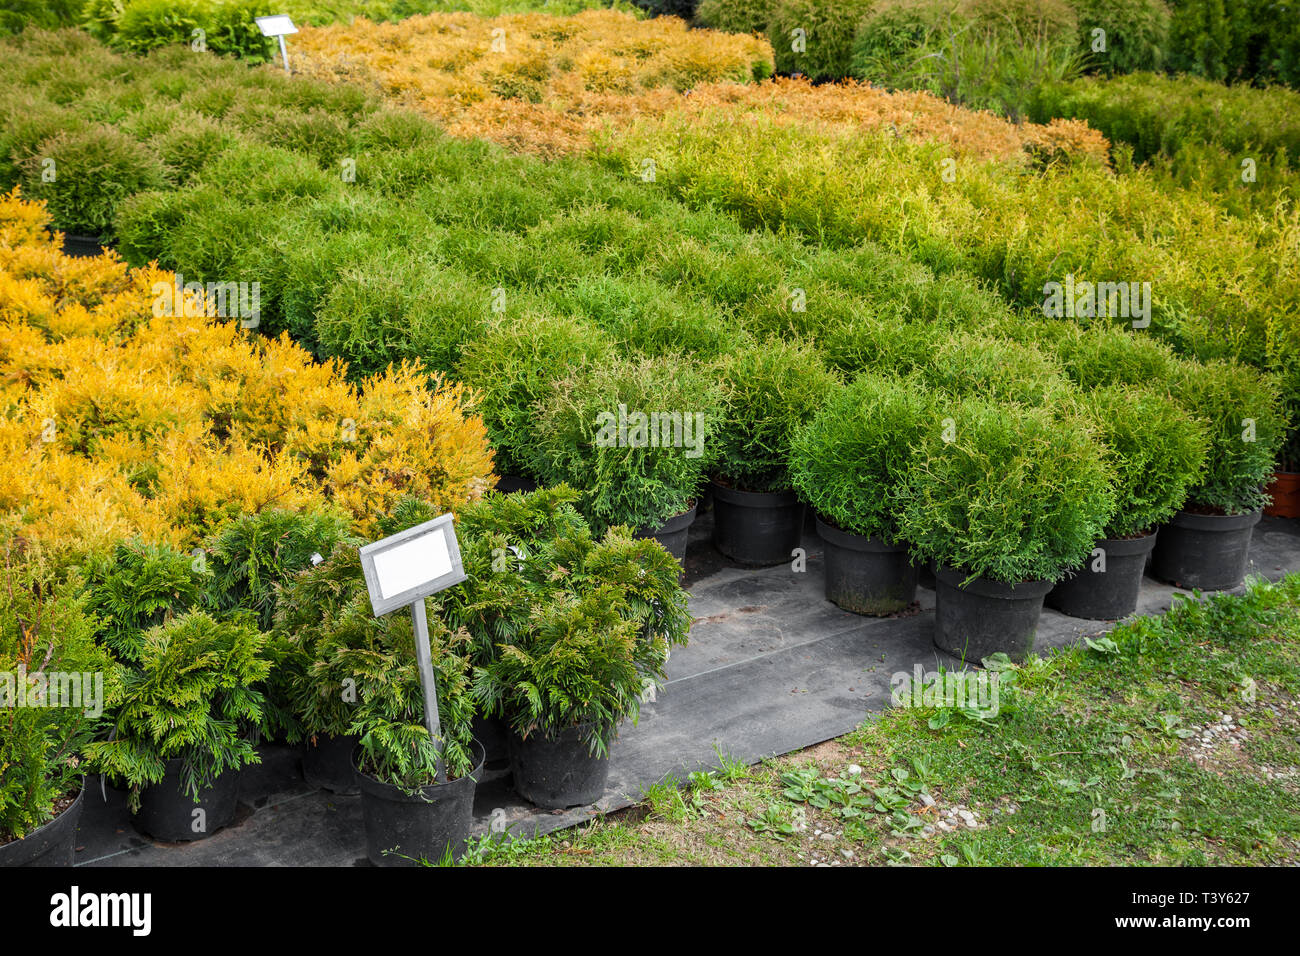 Thuja and cypresses plants in pots for sale on tree farm. - Stock Image